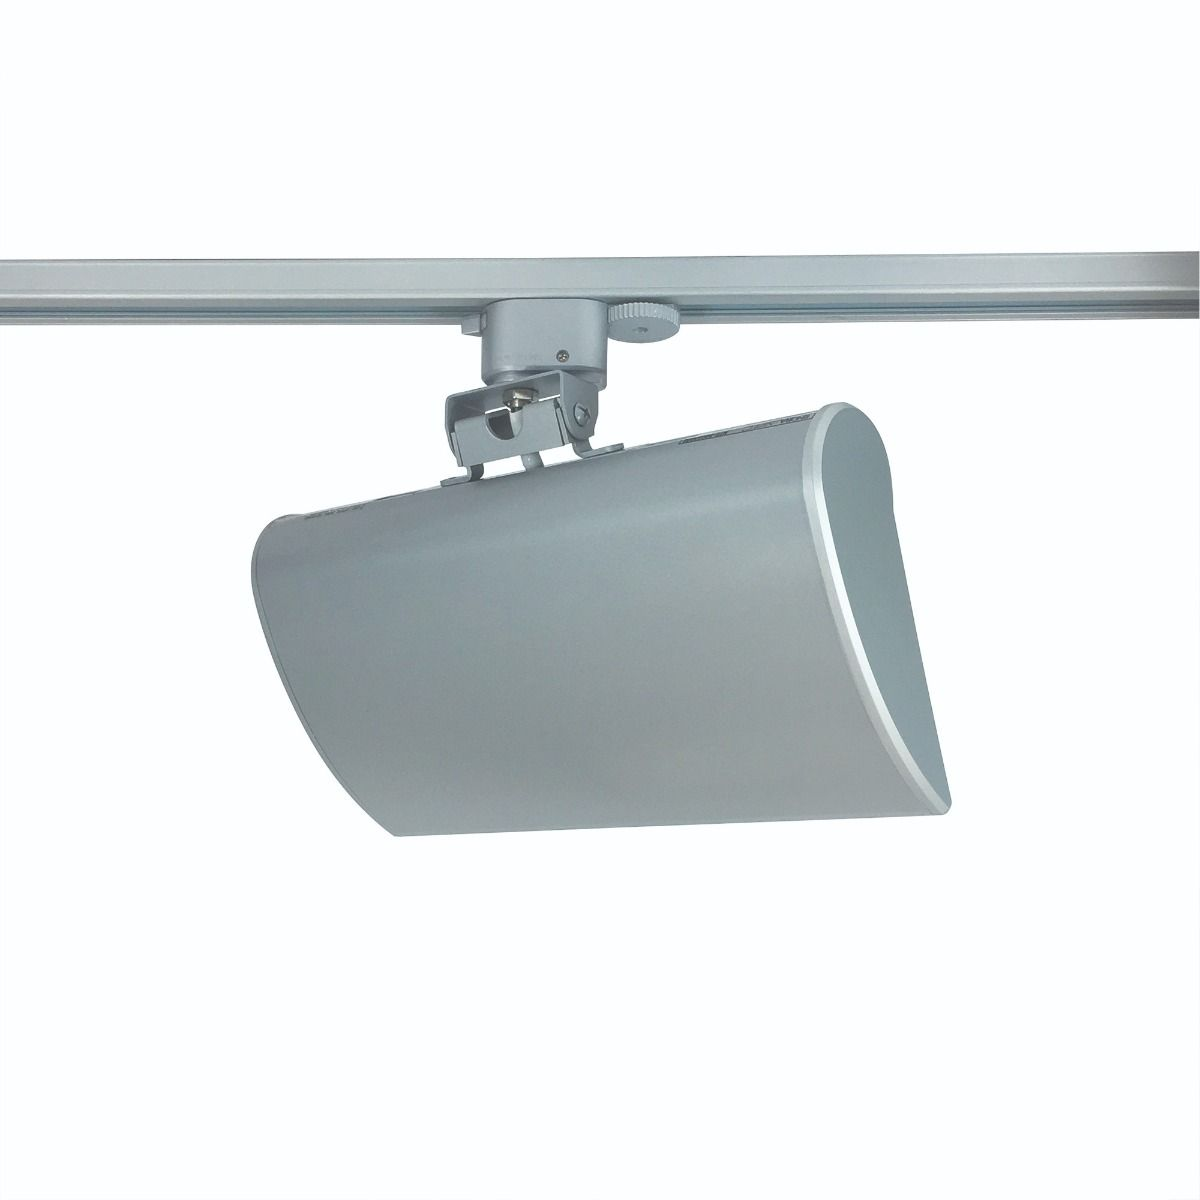 Commercial Grade Led Track Lighting: Alcon Lighting 13252 Metropolitan Architectural LED Track